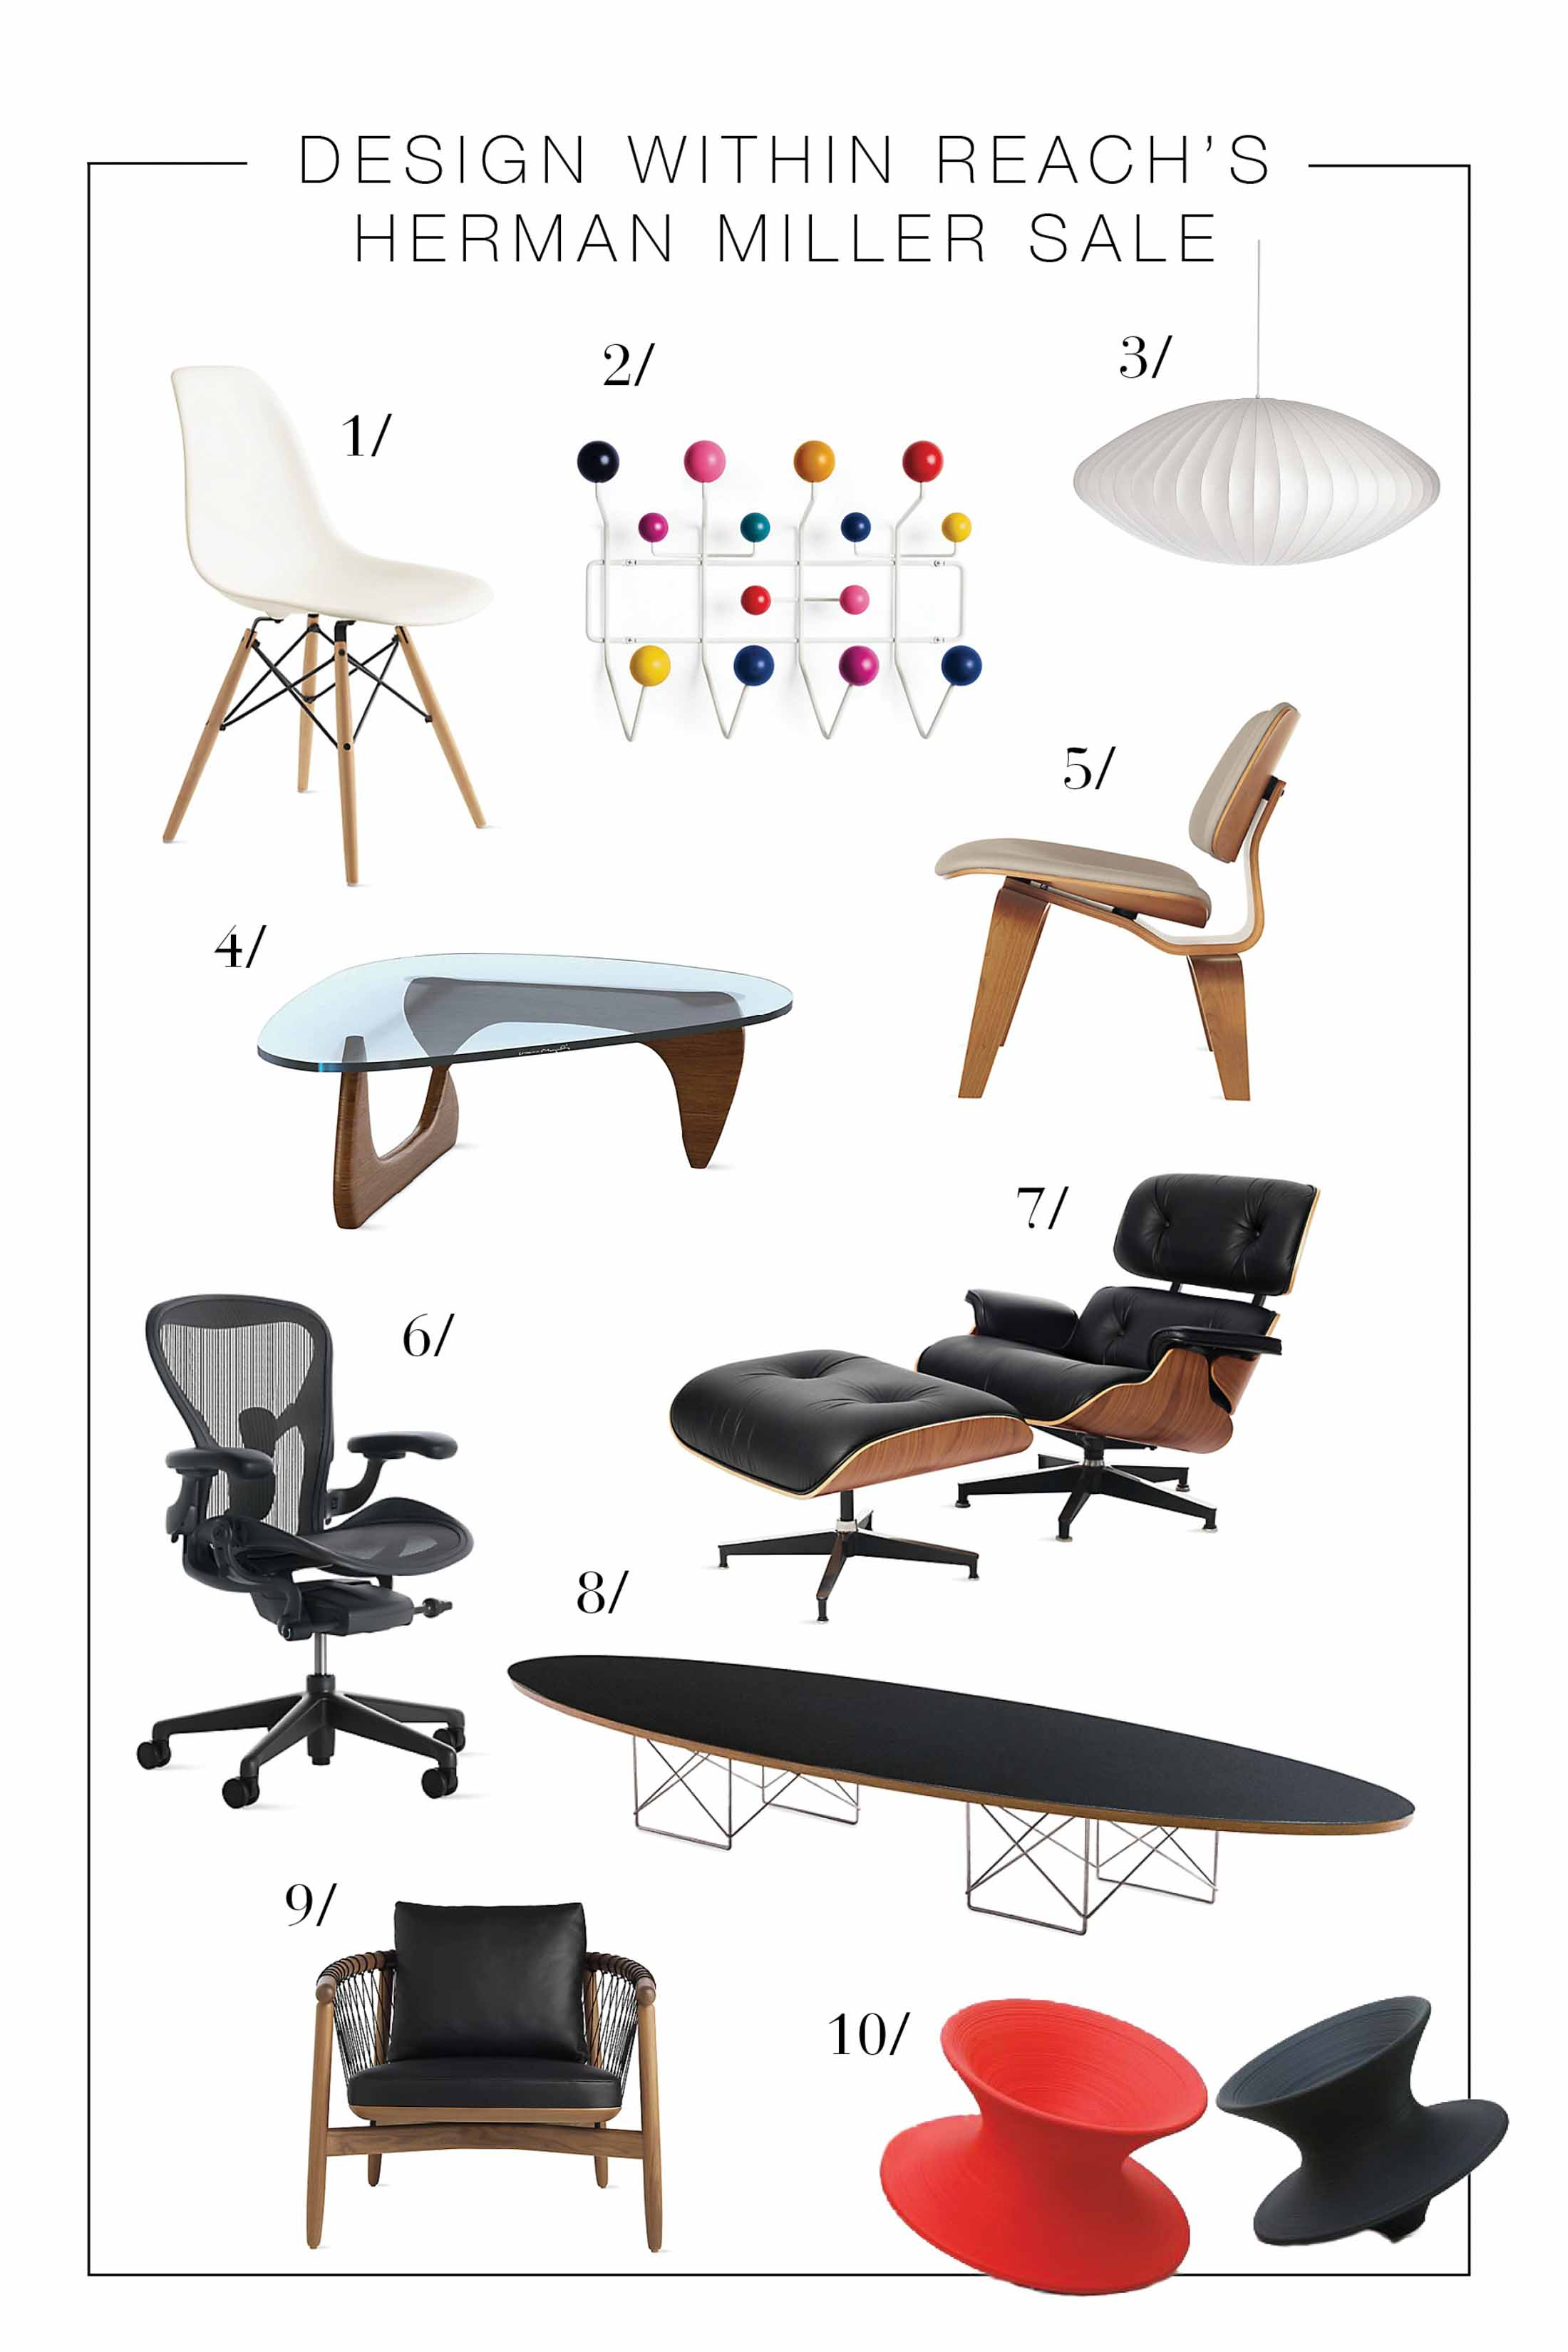 If modern & mid-cenrtury modern furniture gives you life, you need these iconic investment-worthy pieces in your life. Welcome to DWR's Herman Miller sale.